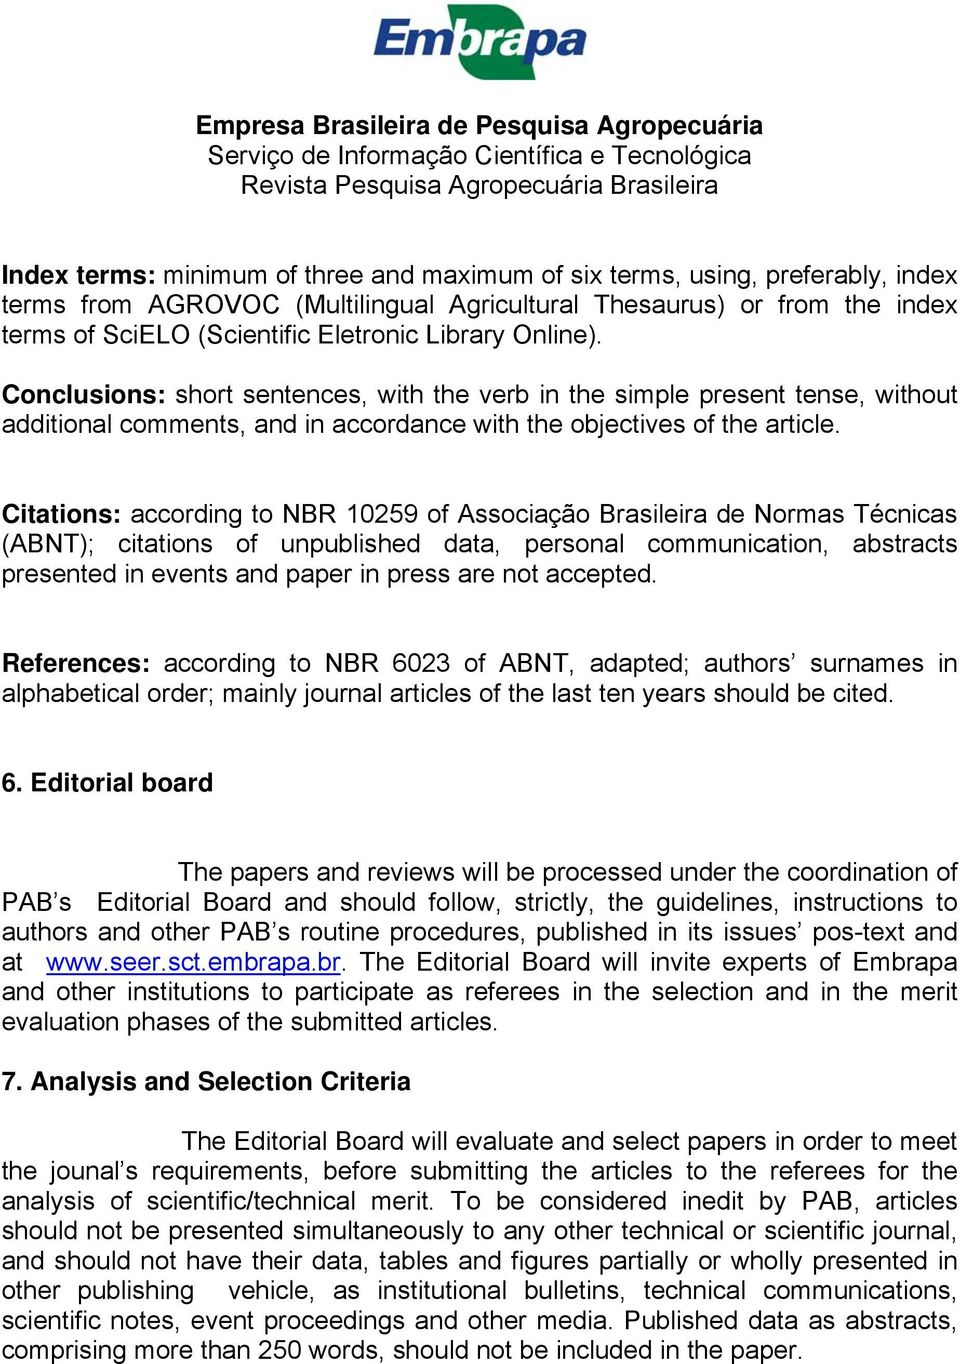 Citations: according to NBR 10259 of Associação Brasileira de Normas Técnicas (ABNT); citations of unpublished data, personal communication, abstracts presented in events and paper in press are not